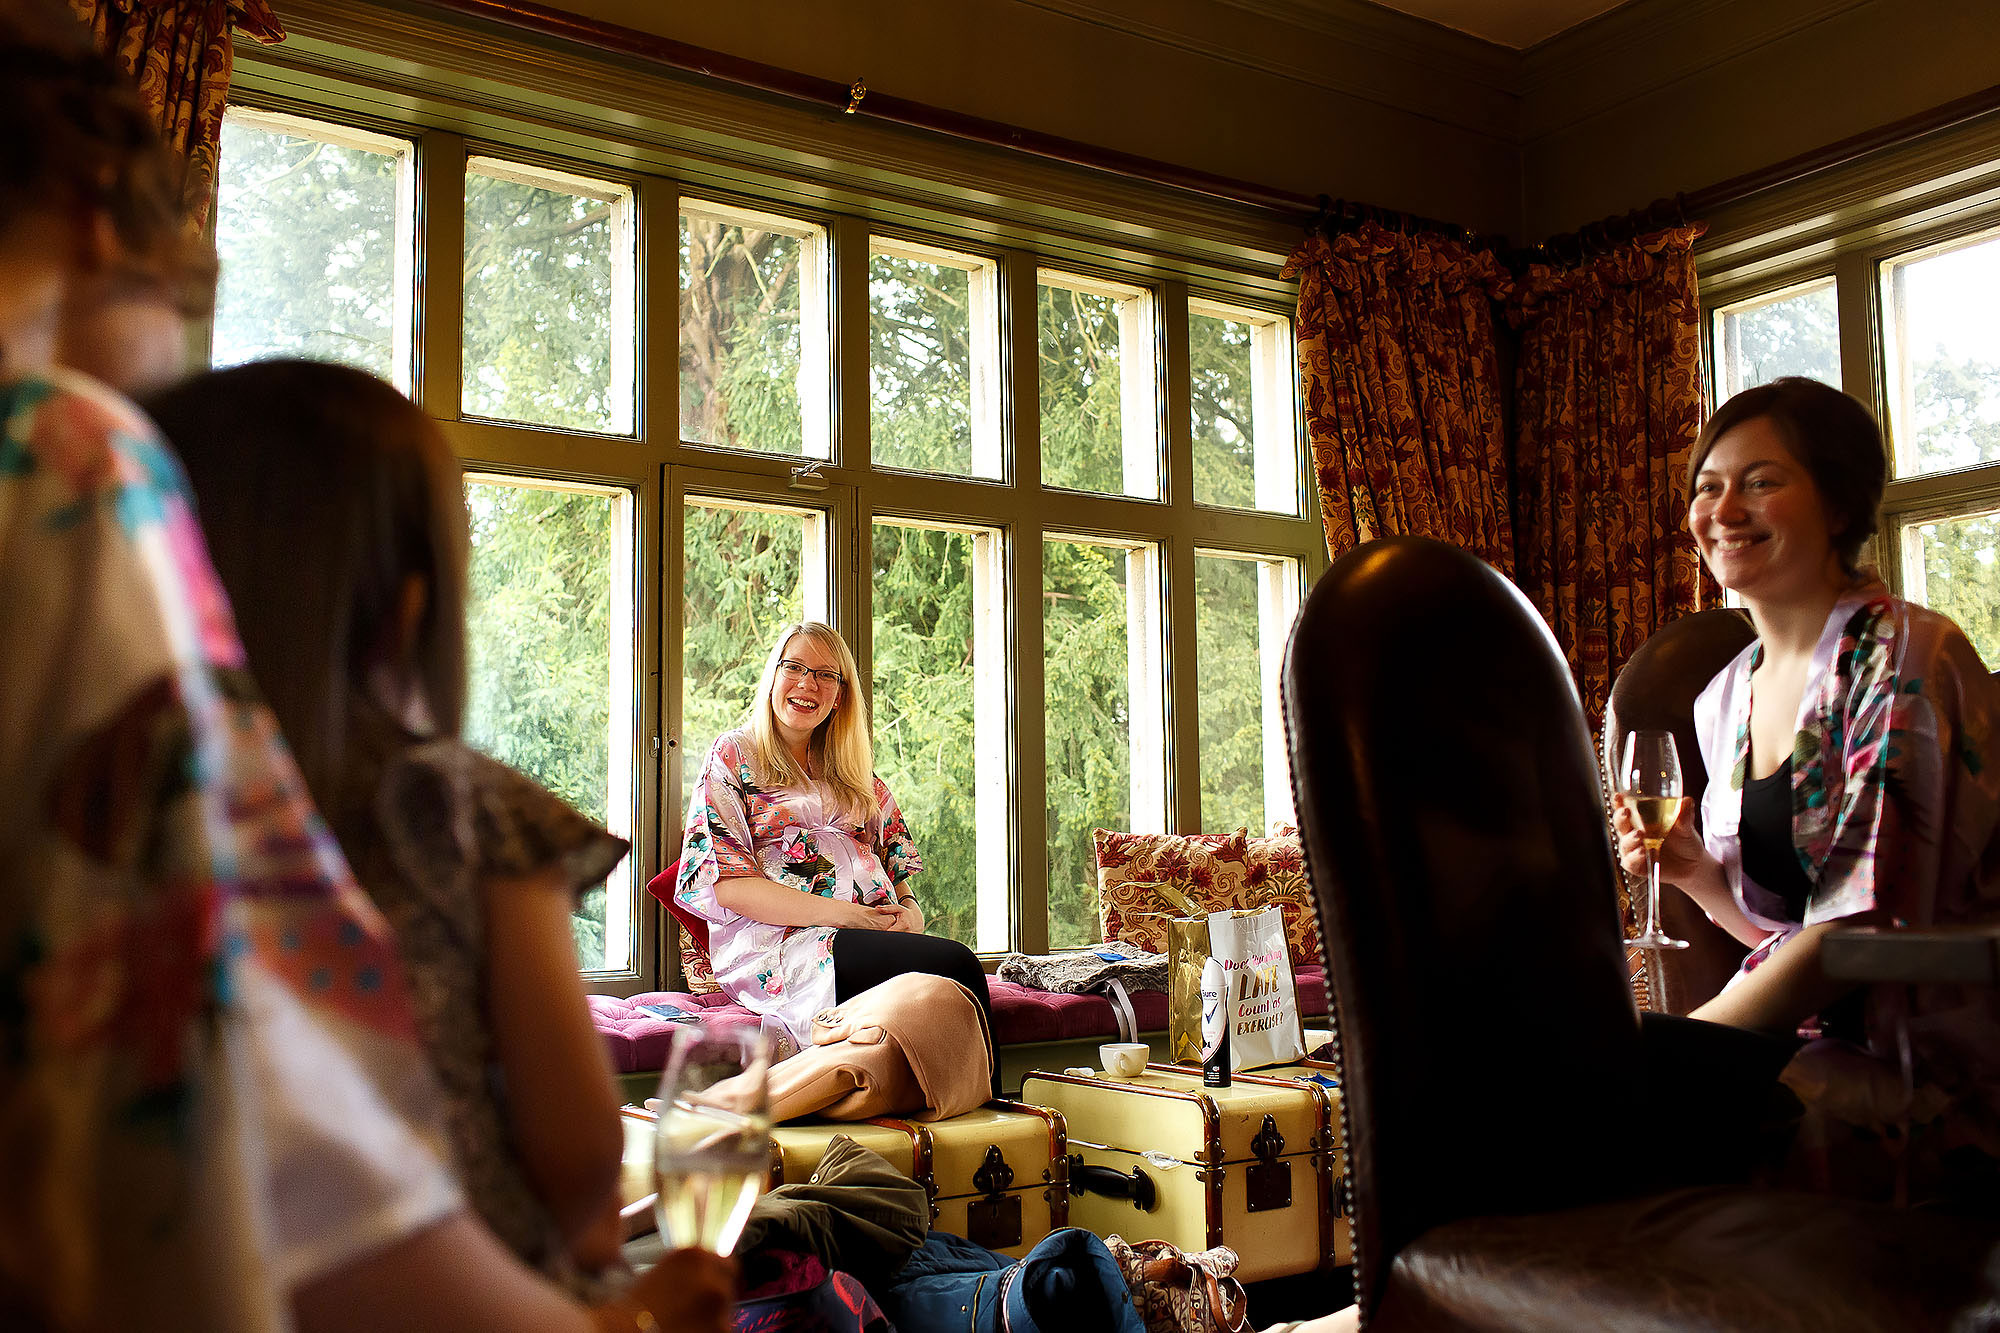 Bride getting ready with bridesmaids at Mitton Hall | Mitton Hall wedding photographs by Toni Darcy Photography